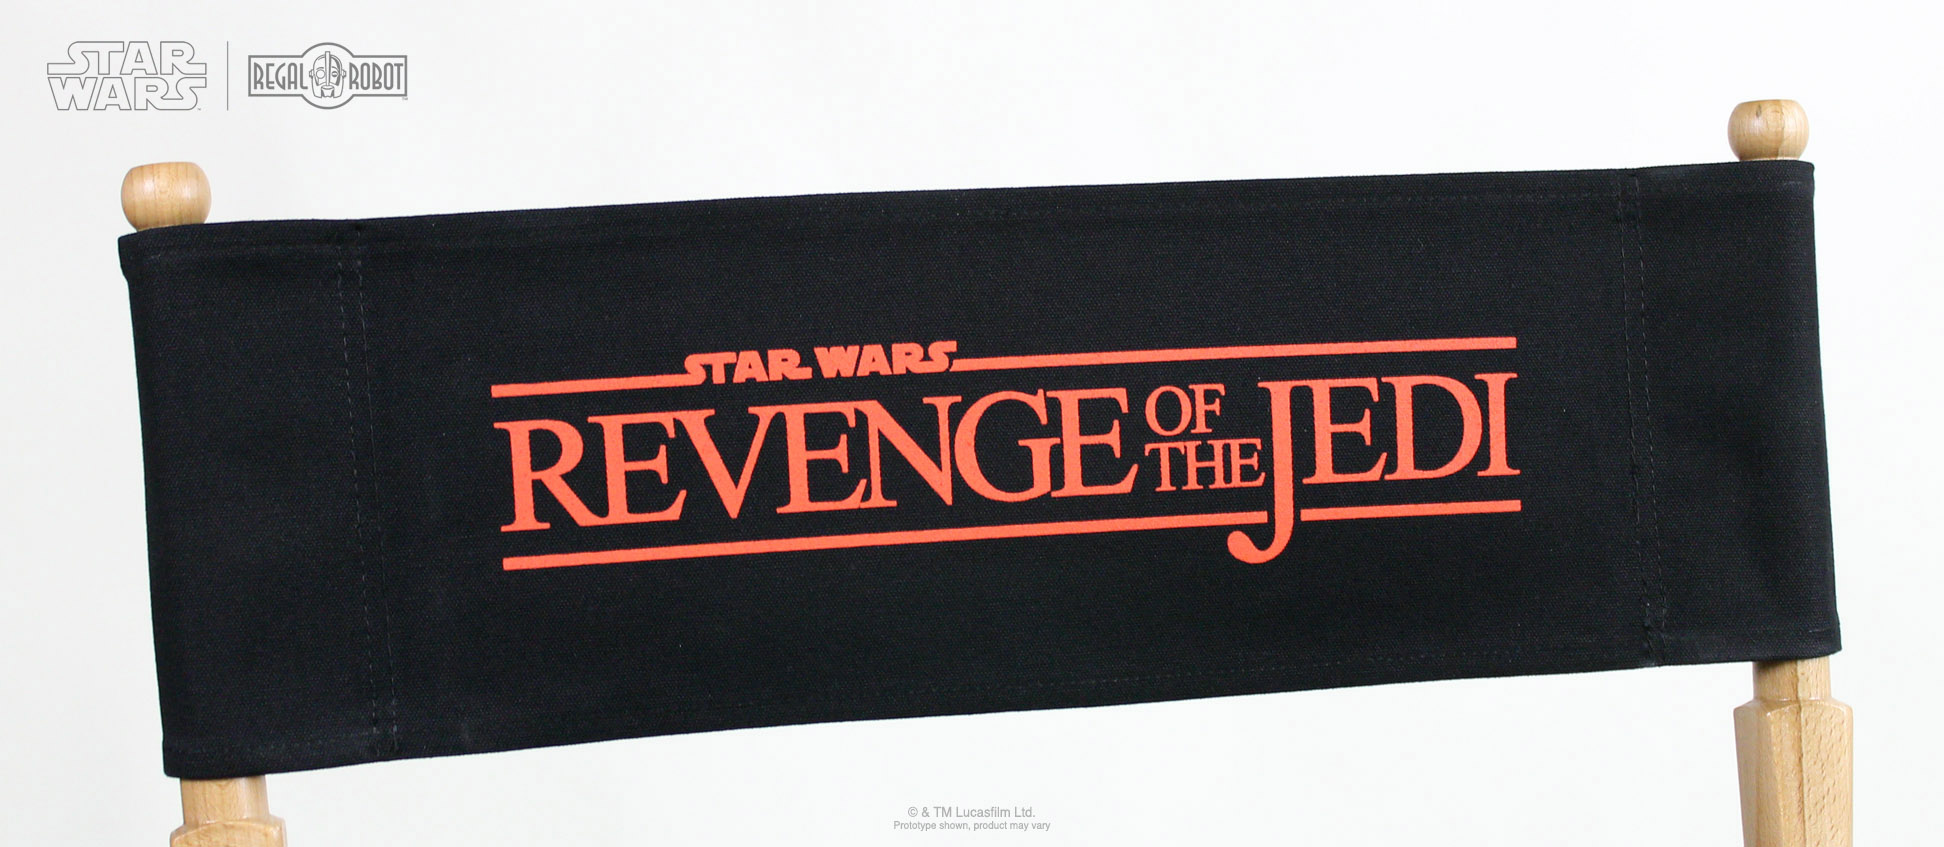 Star Wars Return of the Jedi working title